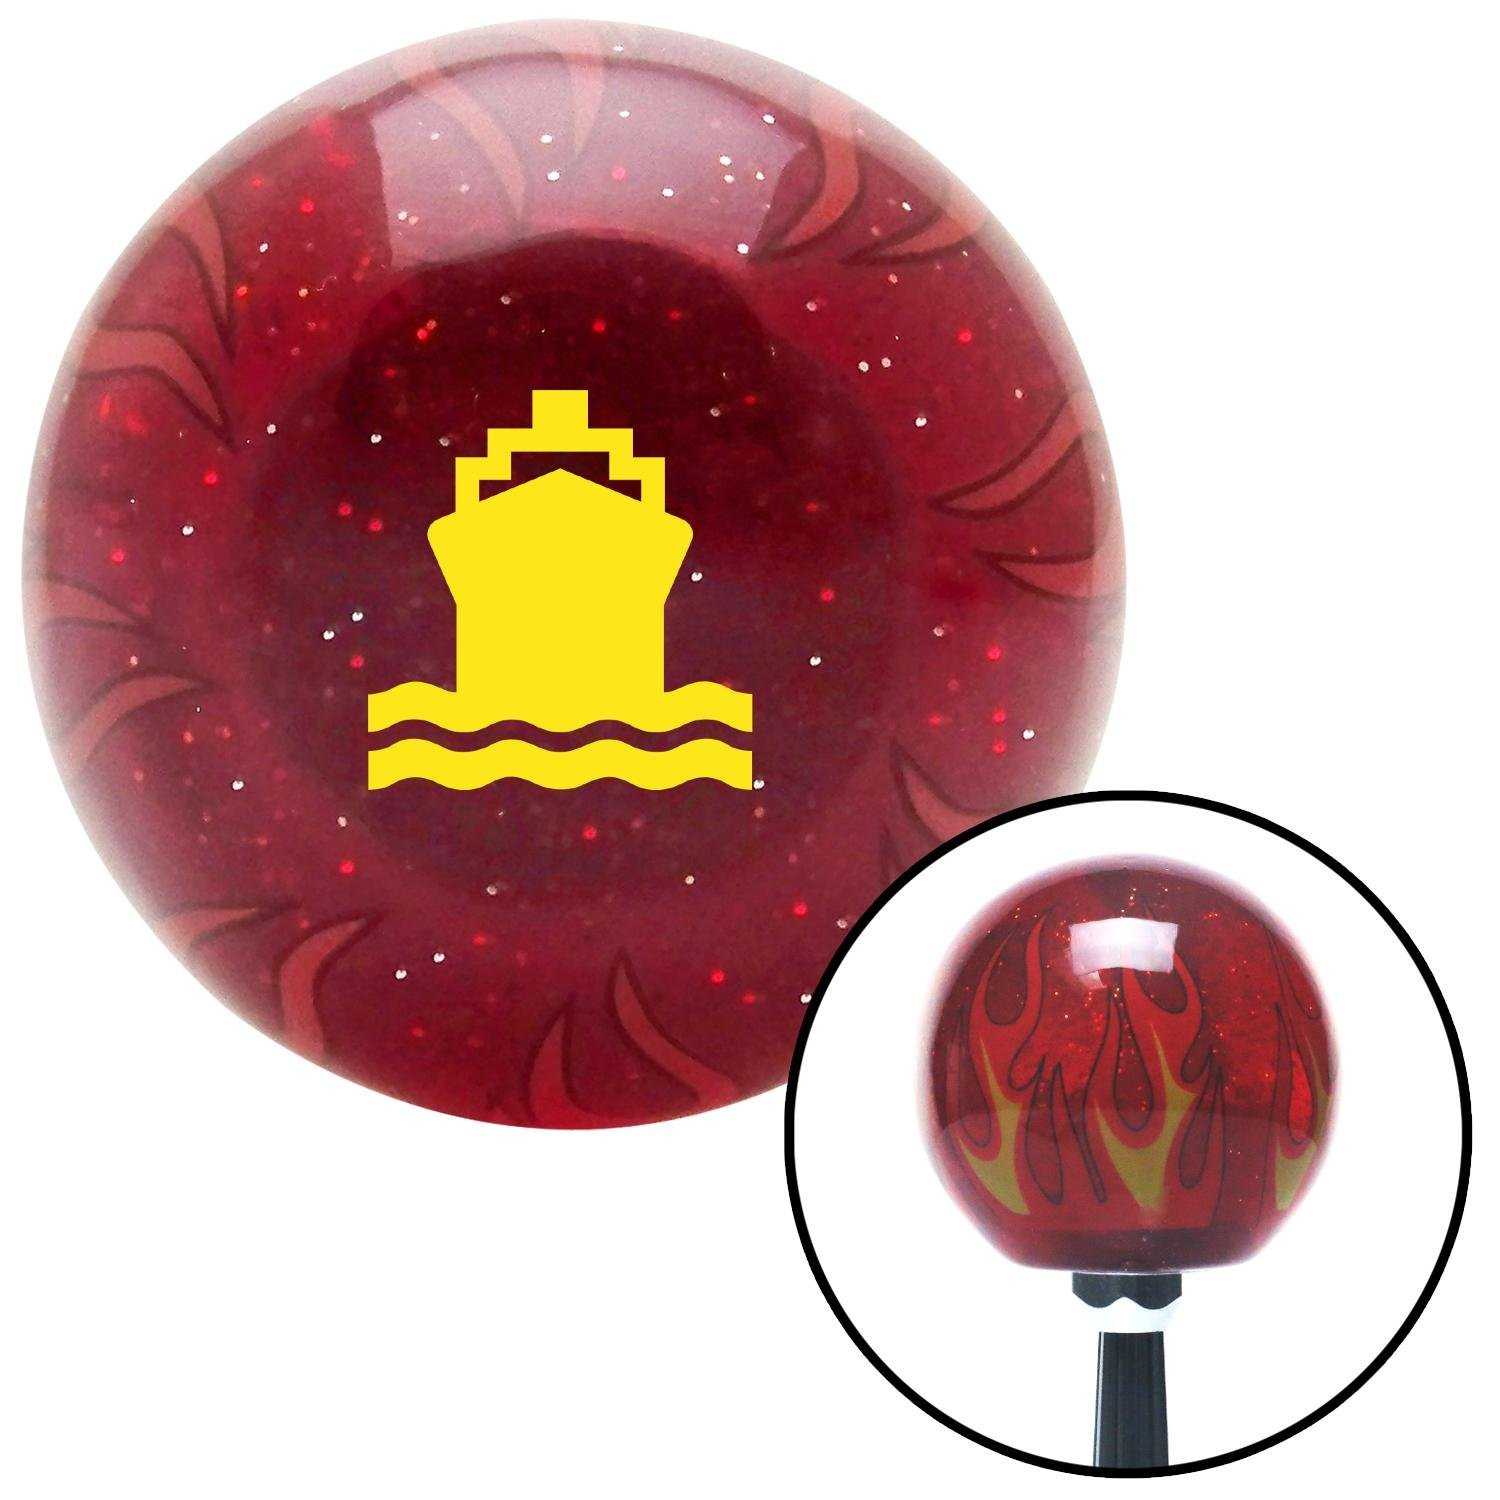 American Shifter 241031 Red Flame Metal Flake Shift Knob with M16 x 1.5 Insert Yellow Marine Ship